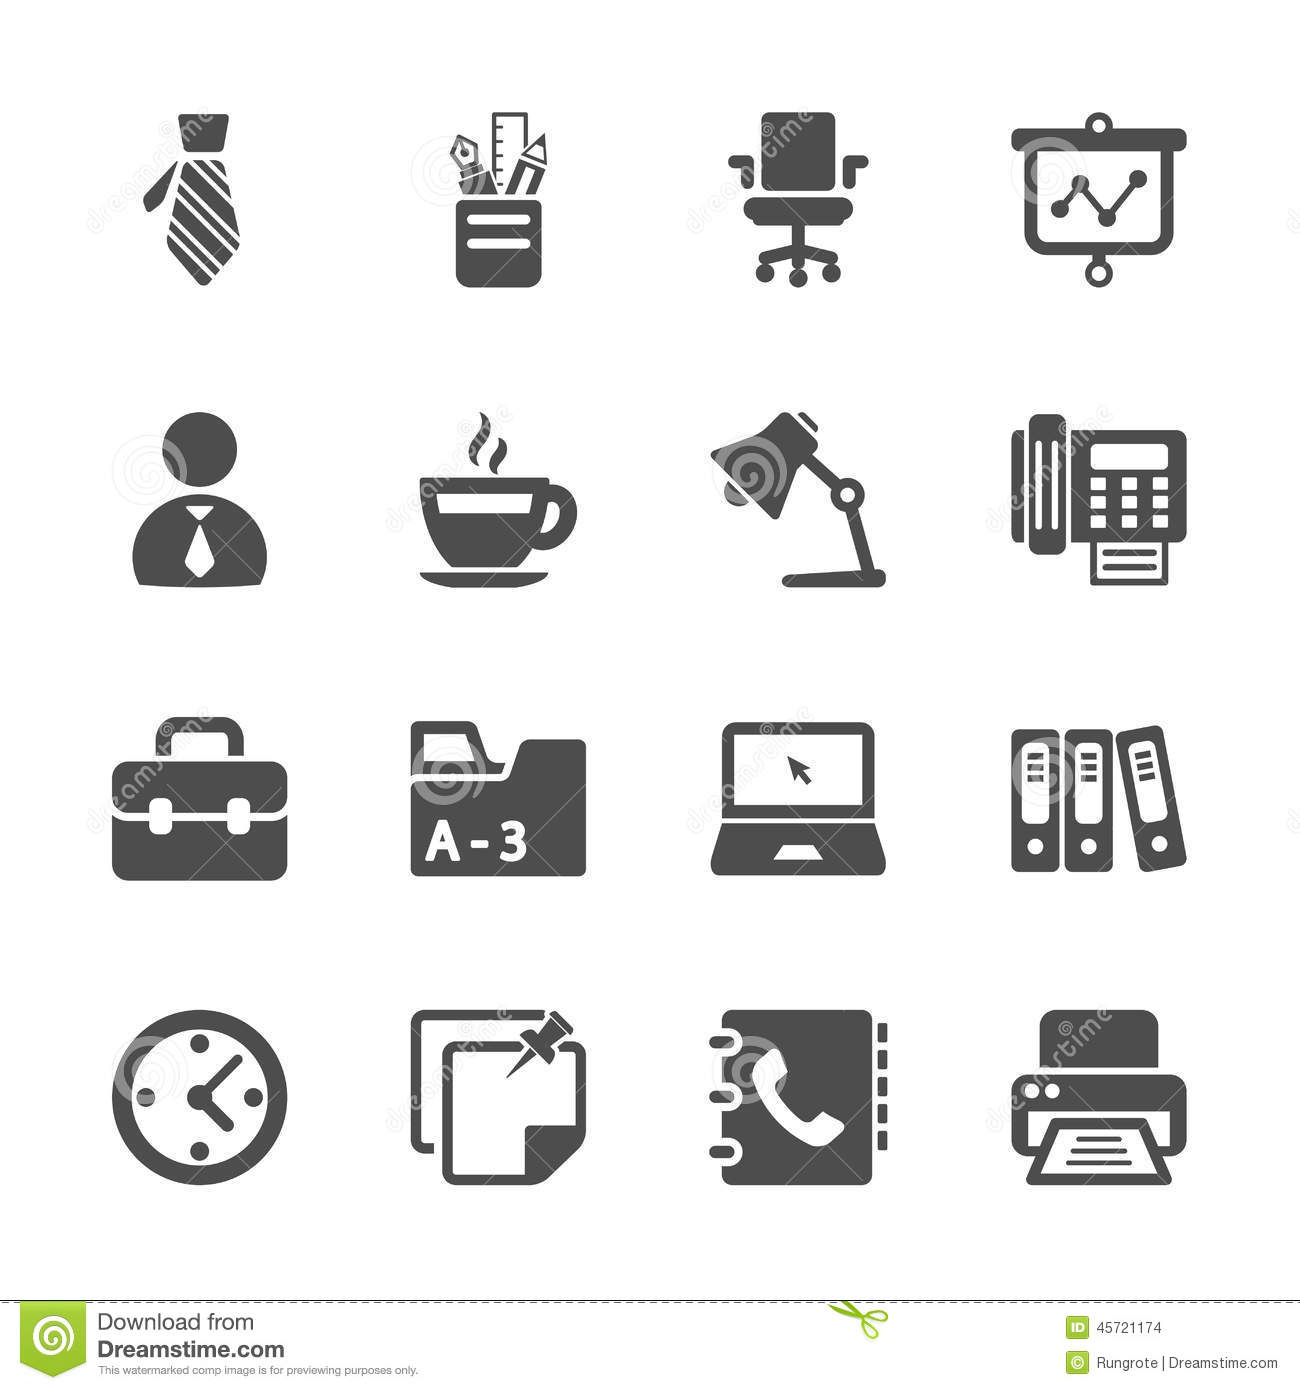 Ensemble d 39 ic ne de travail de bureau vecteur eps10 photo stock image 45721174 for Photos gratuites travail bureau